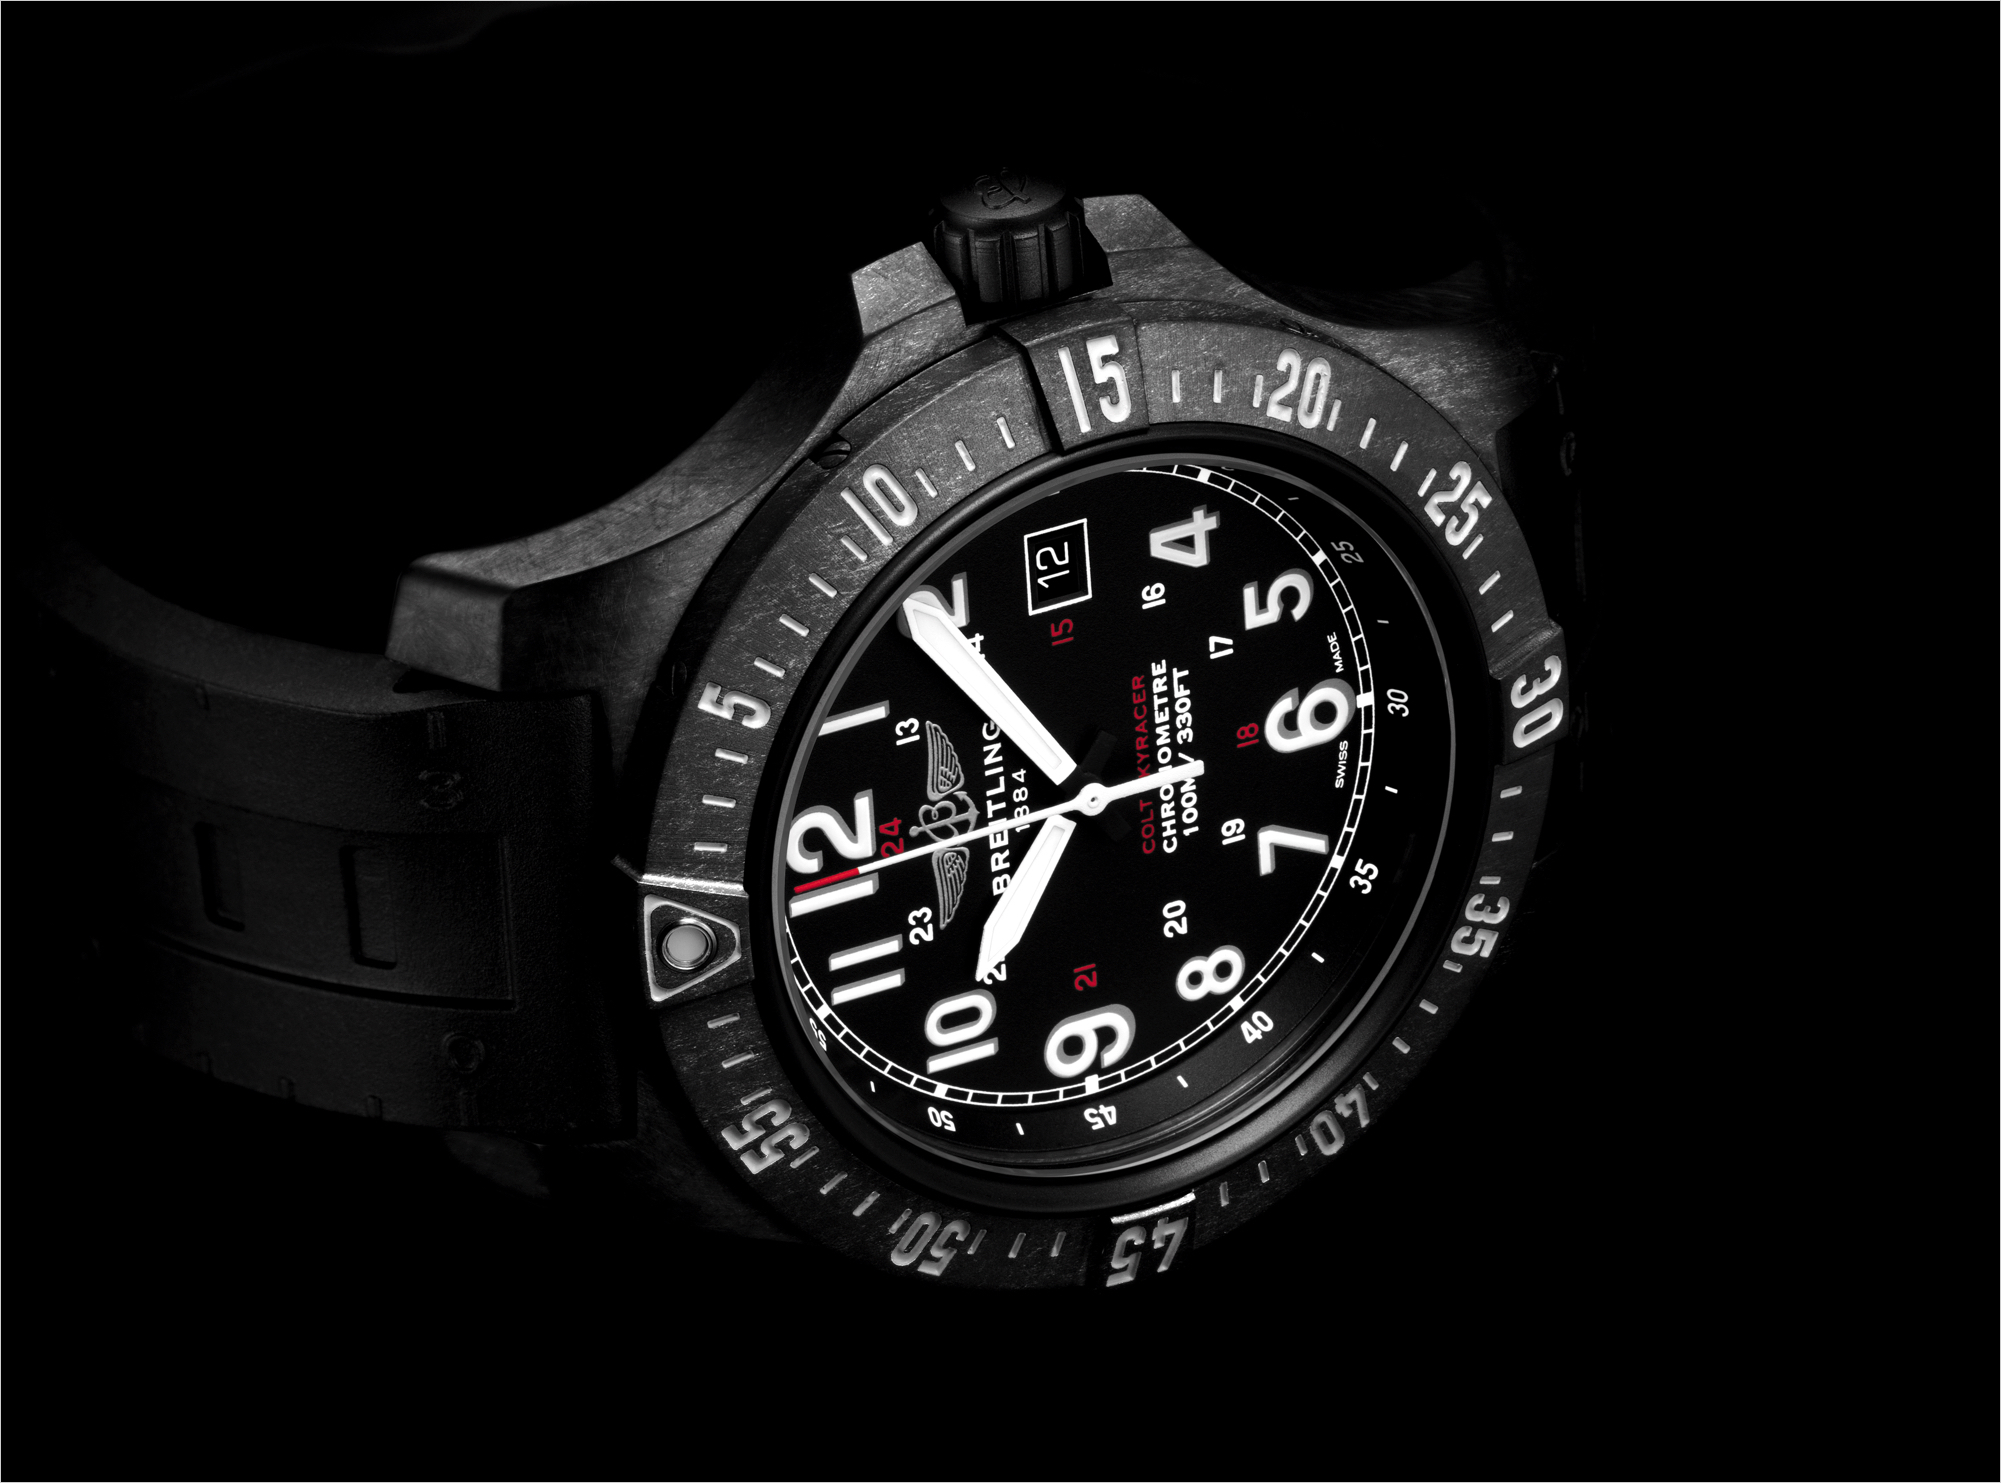 carbon mille felipe watch watches best of luxury trends richard massa rm fiber